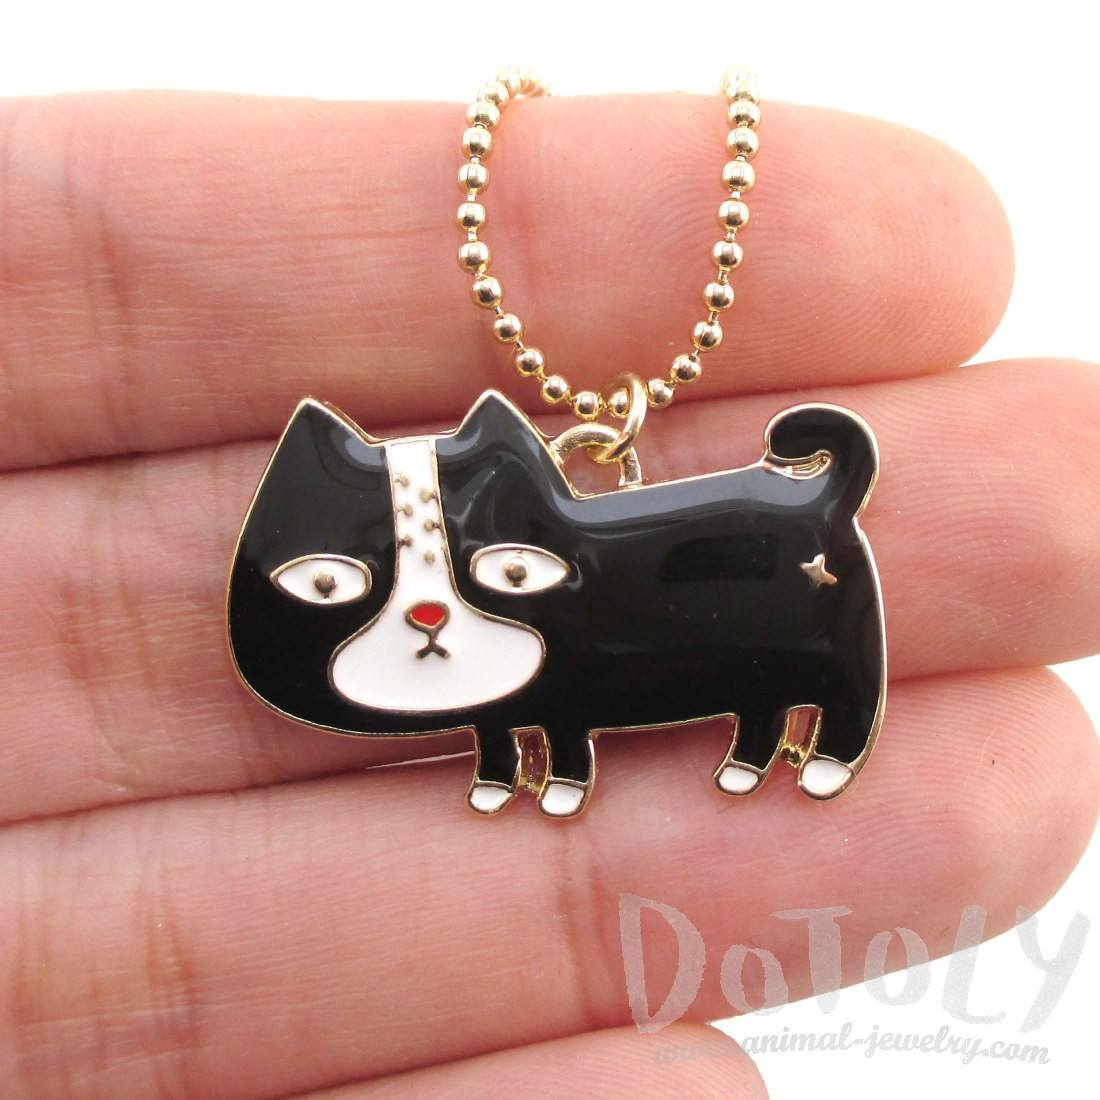 Cute Black and White Kitty Cat Shaped Pendant Necklace